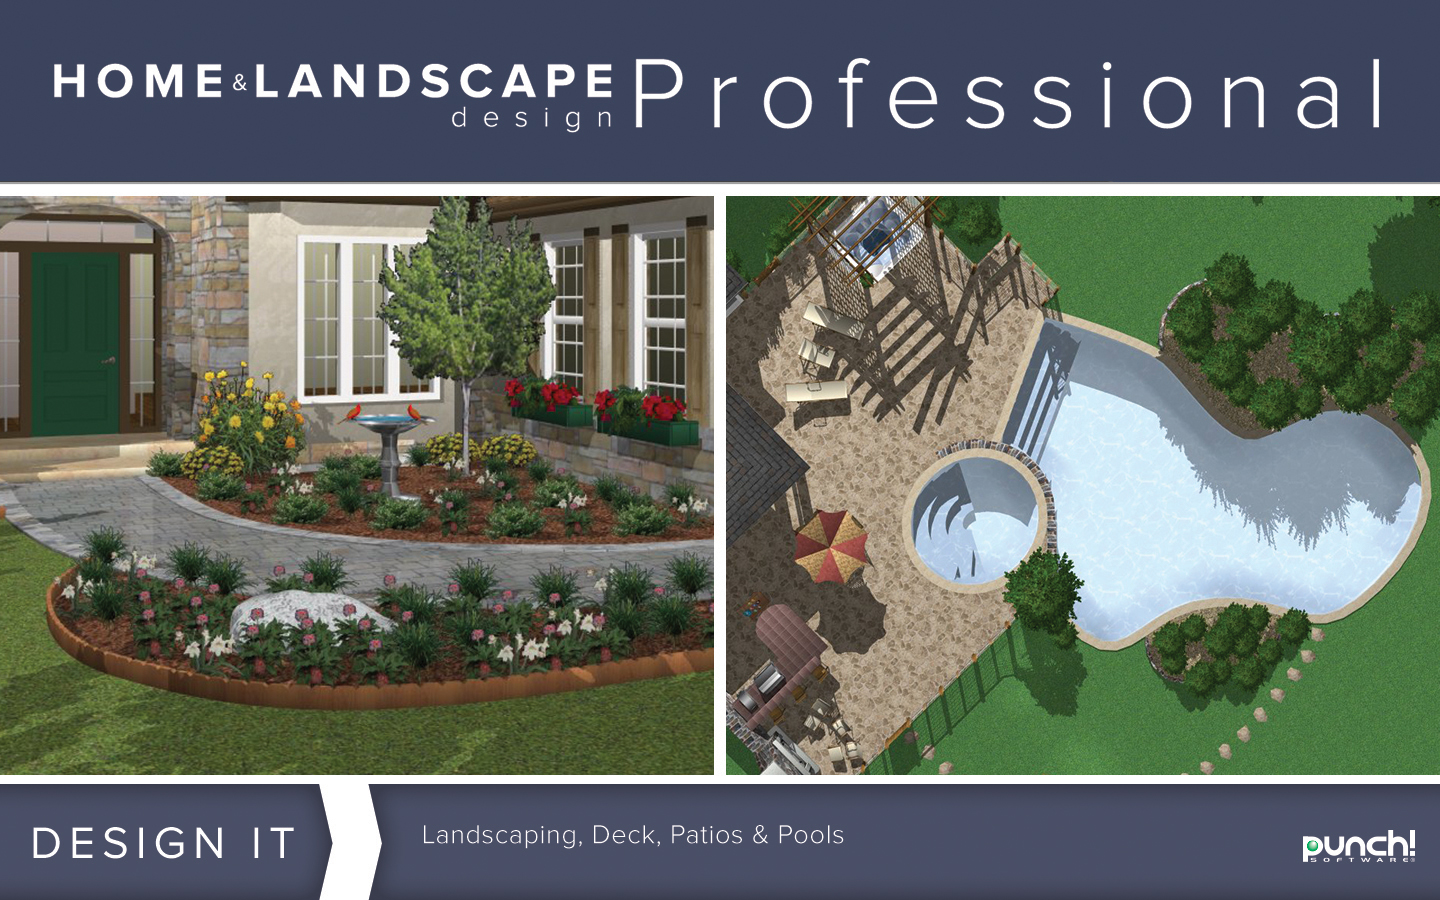 Punch home landscape design professional v19 home - Best home and landscape design software ...